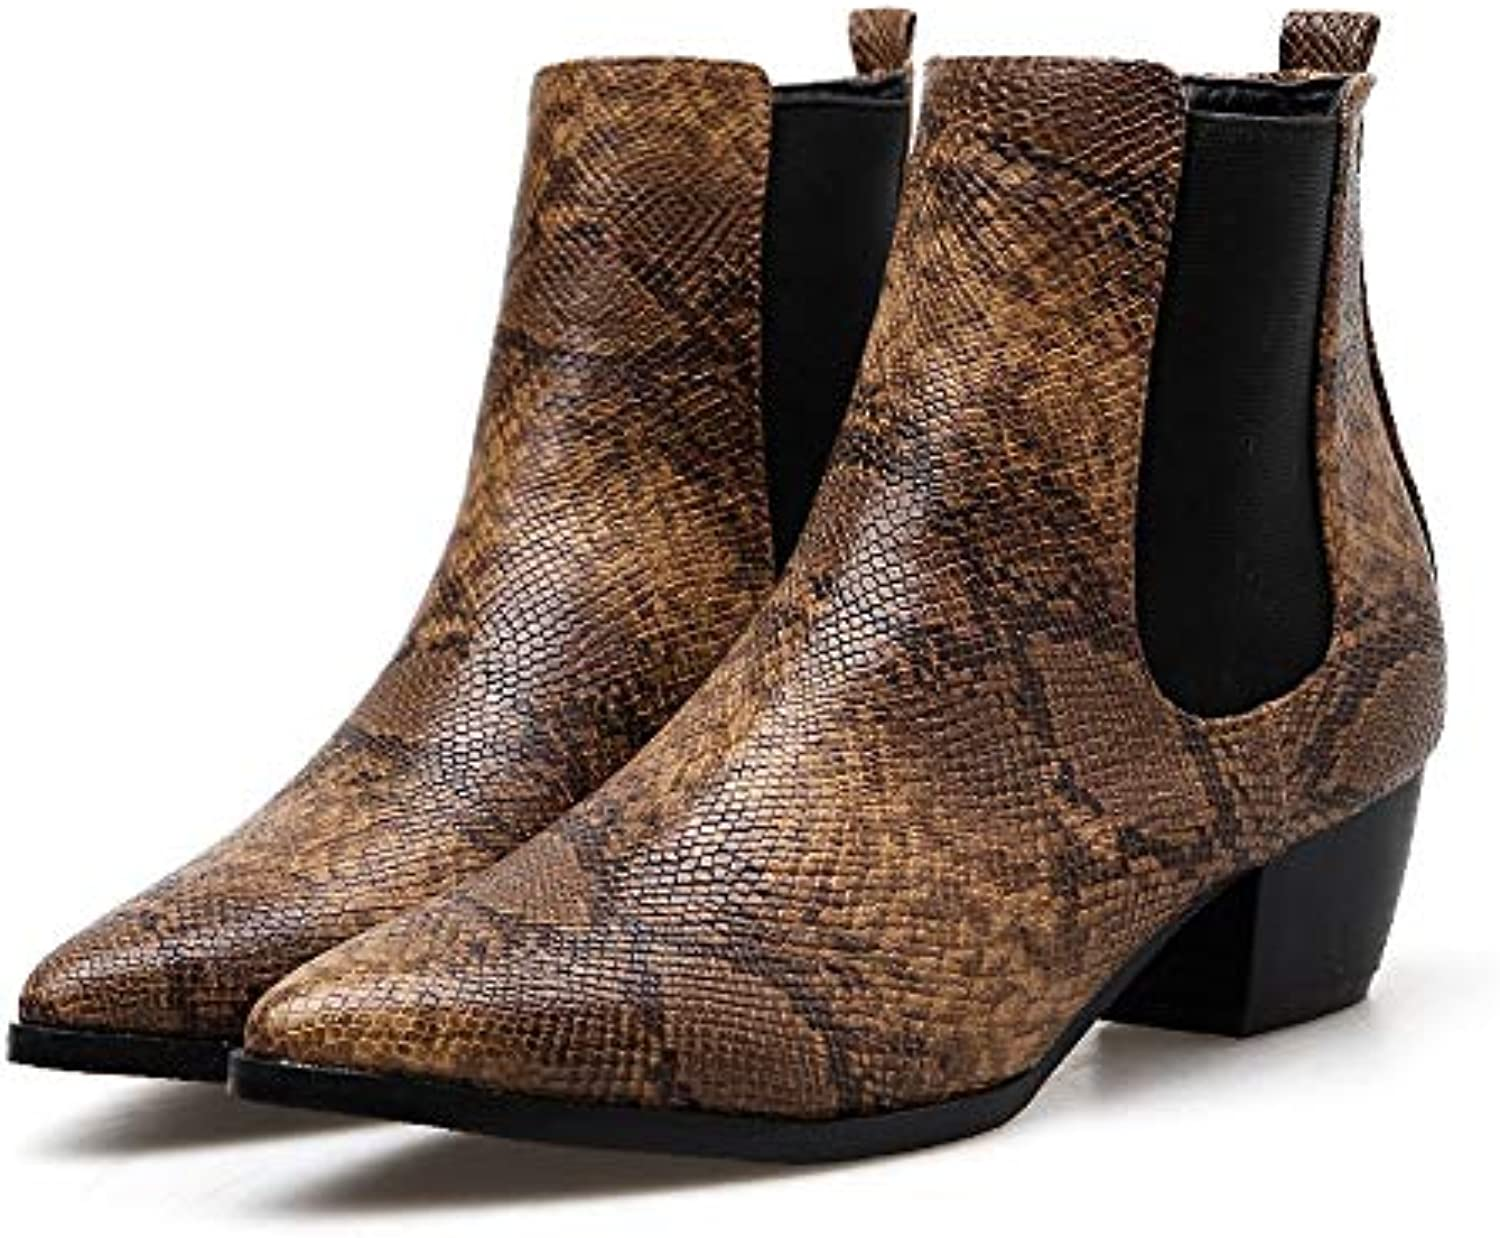 DongDong Stylish Snakeskin Ankle Booties- Women's Pointed Toe Belt Buckle Thick Boot Seasonal Offers